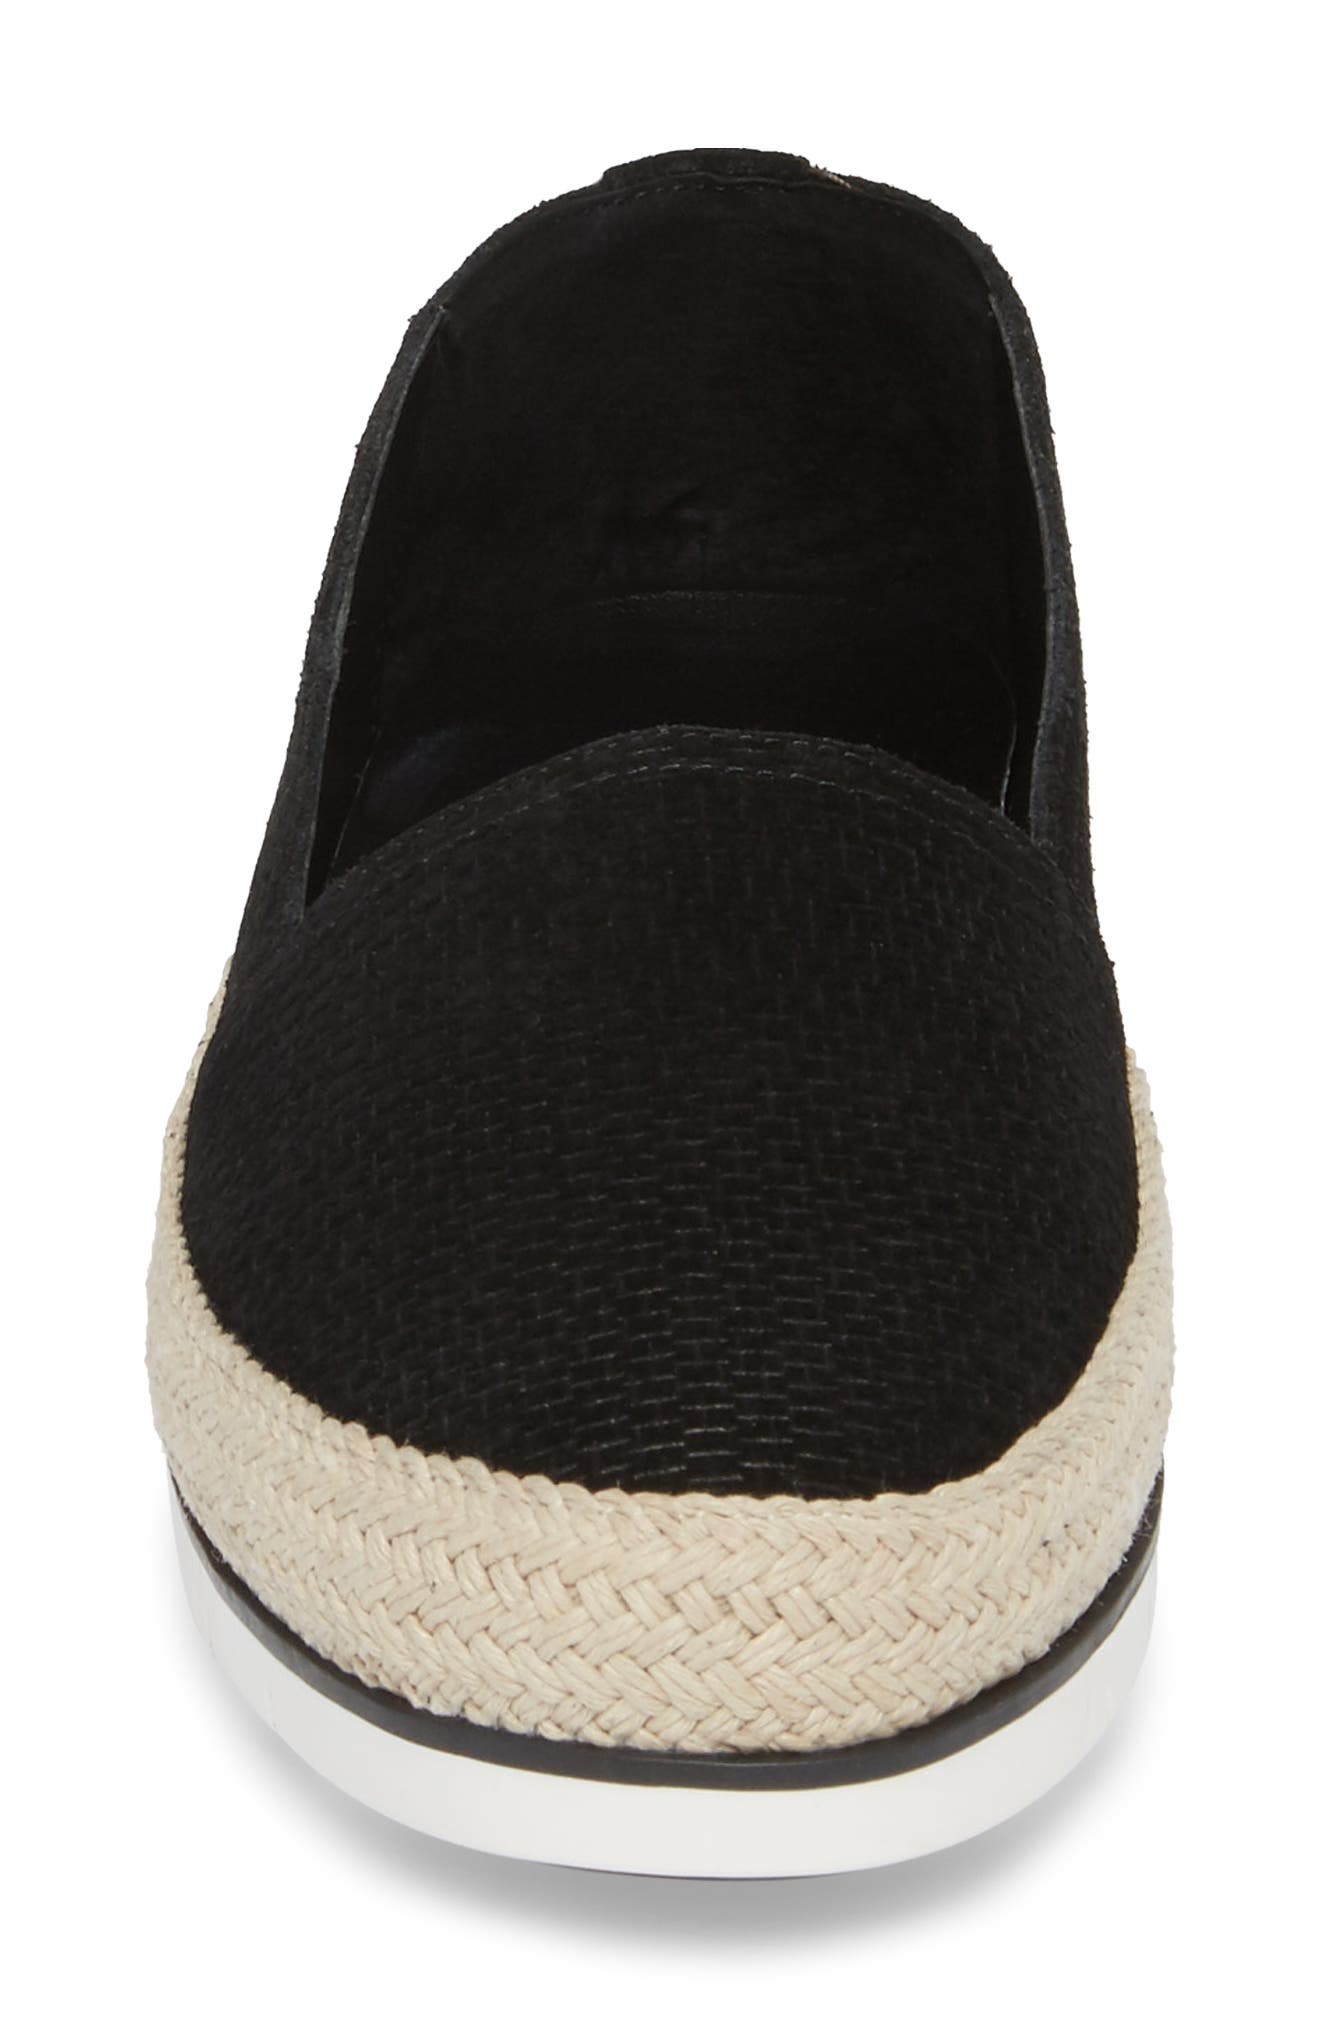 Palm Slip-On Sneaker,                             Alternate thumbnail 4, color,                             Black Suede